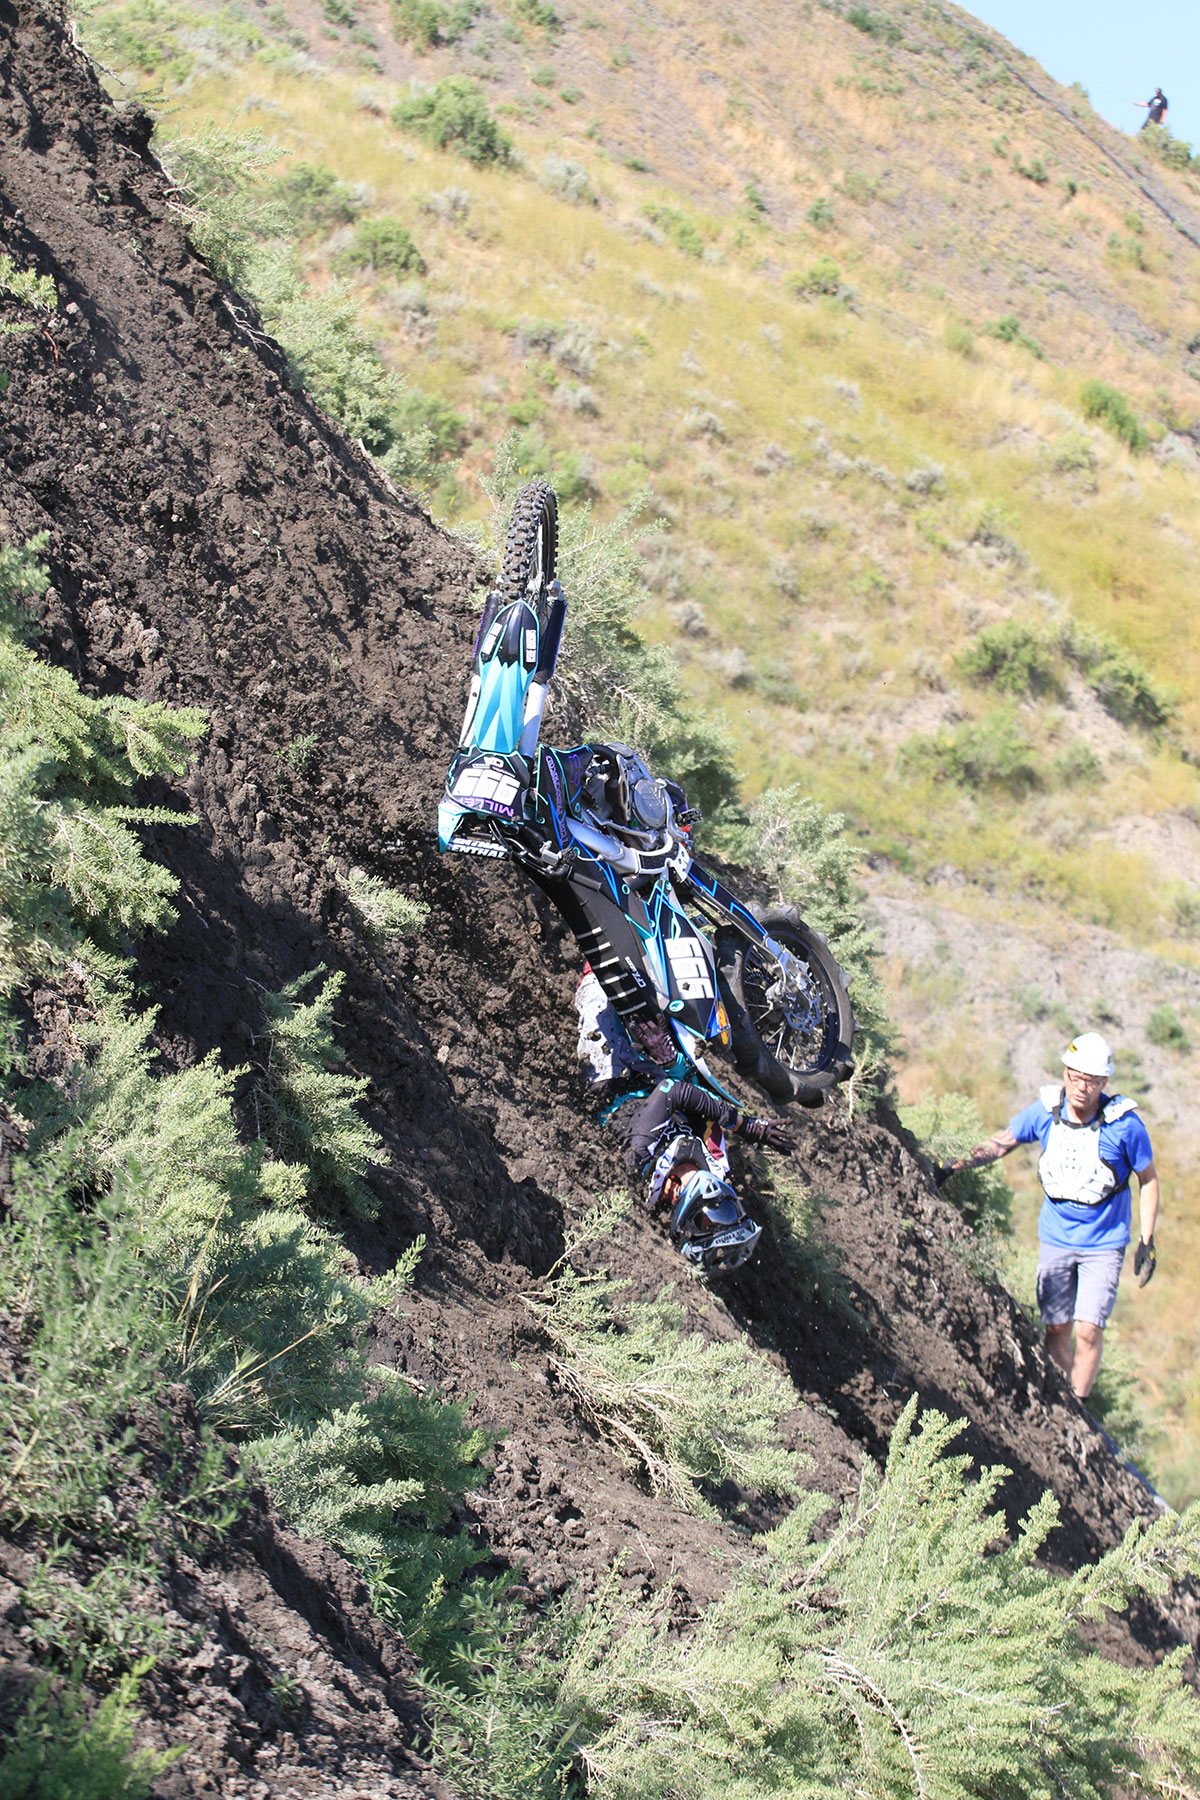 Dirt Bike Images >> BILLINGS 1OOTH ANNUAL GREAT AMERICAN HILL CLIMB | Dirt Bike Magazine